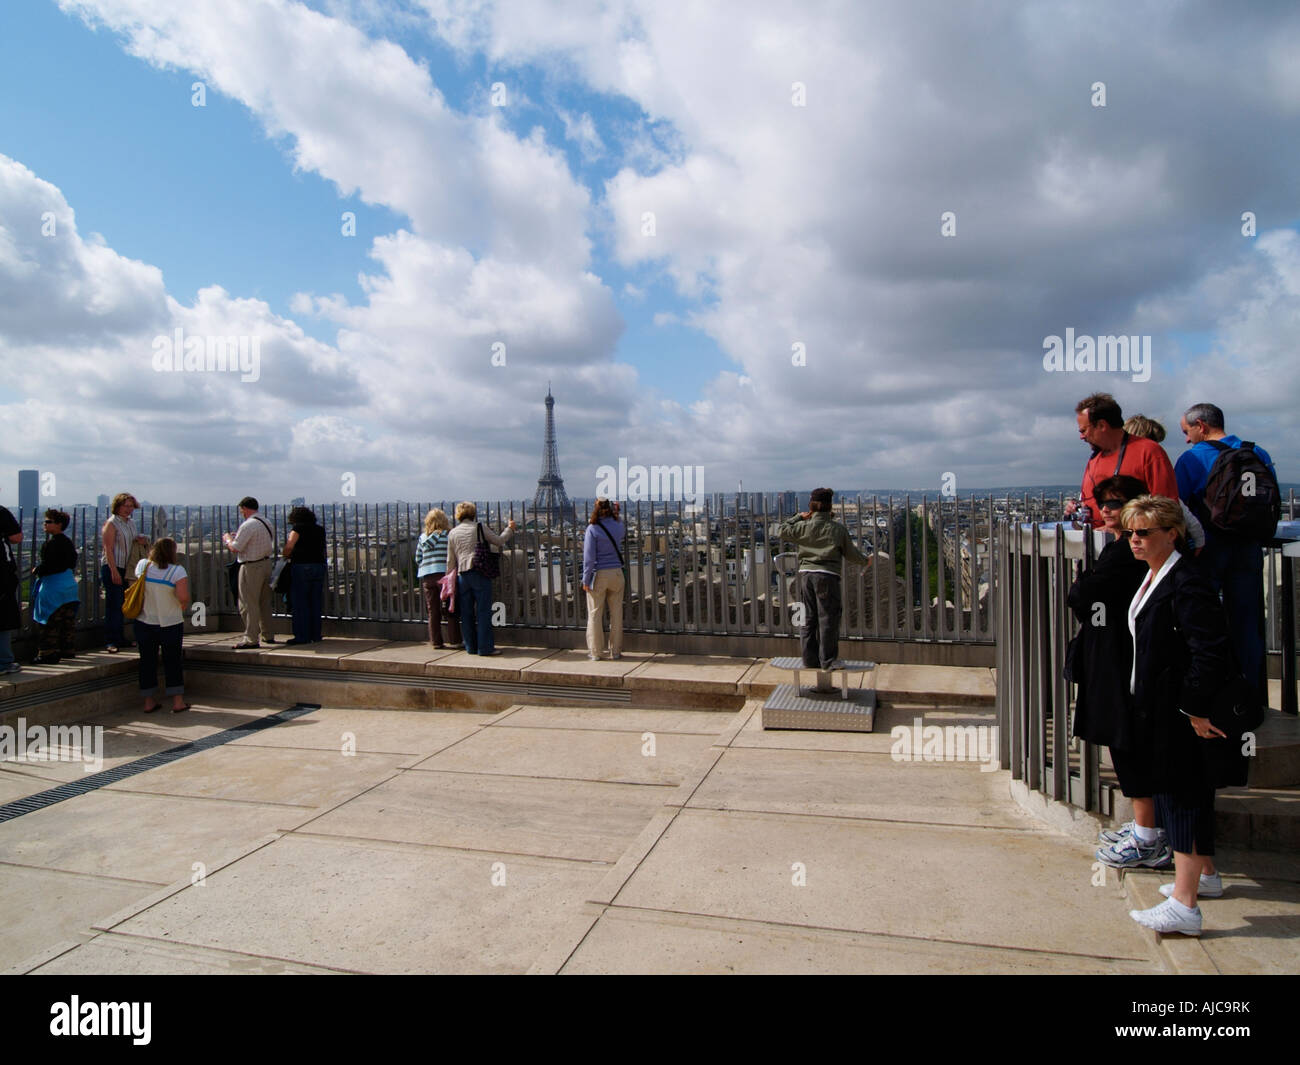 The observation deck on top of the Arc de Triomphe with many tourists looking at the Eiffel tower Paris France - Stock Image